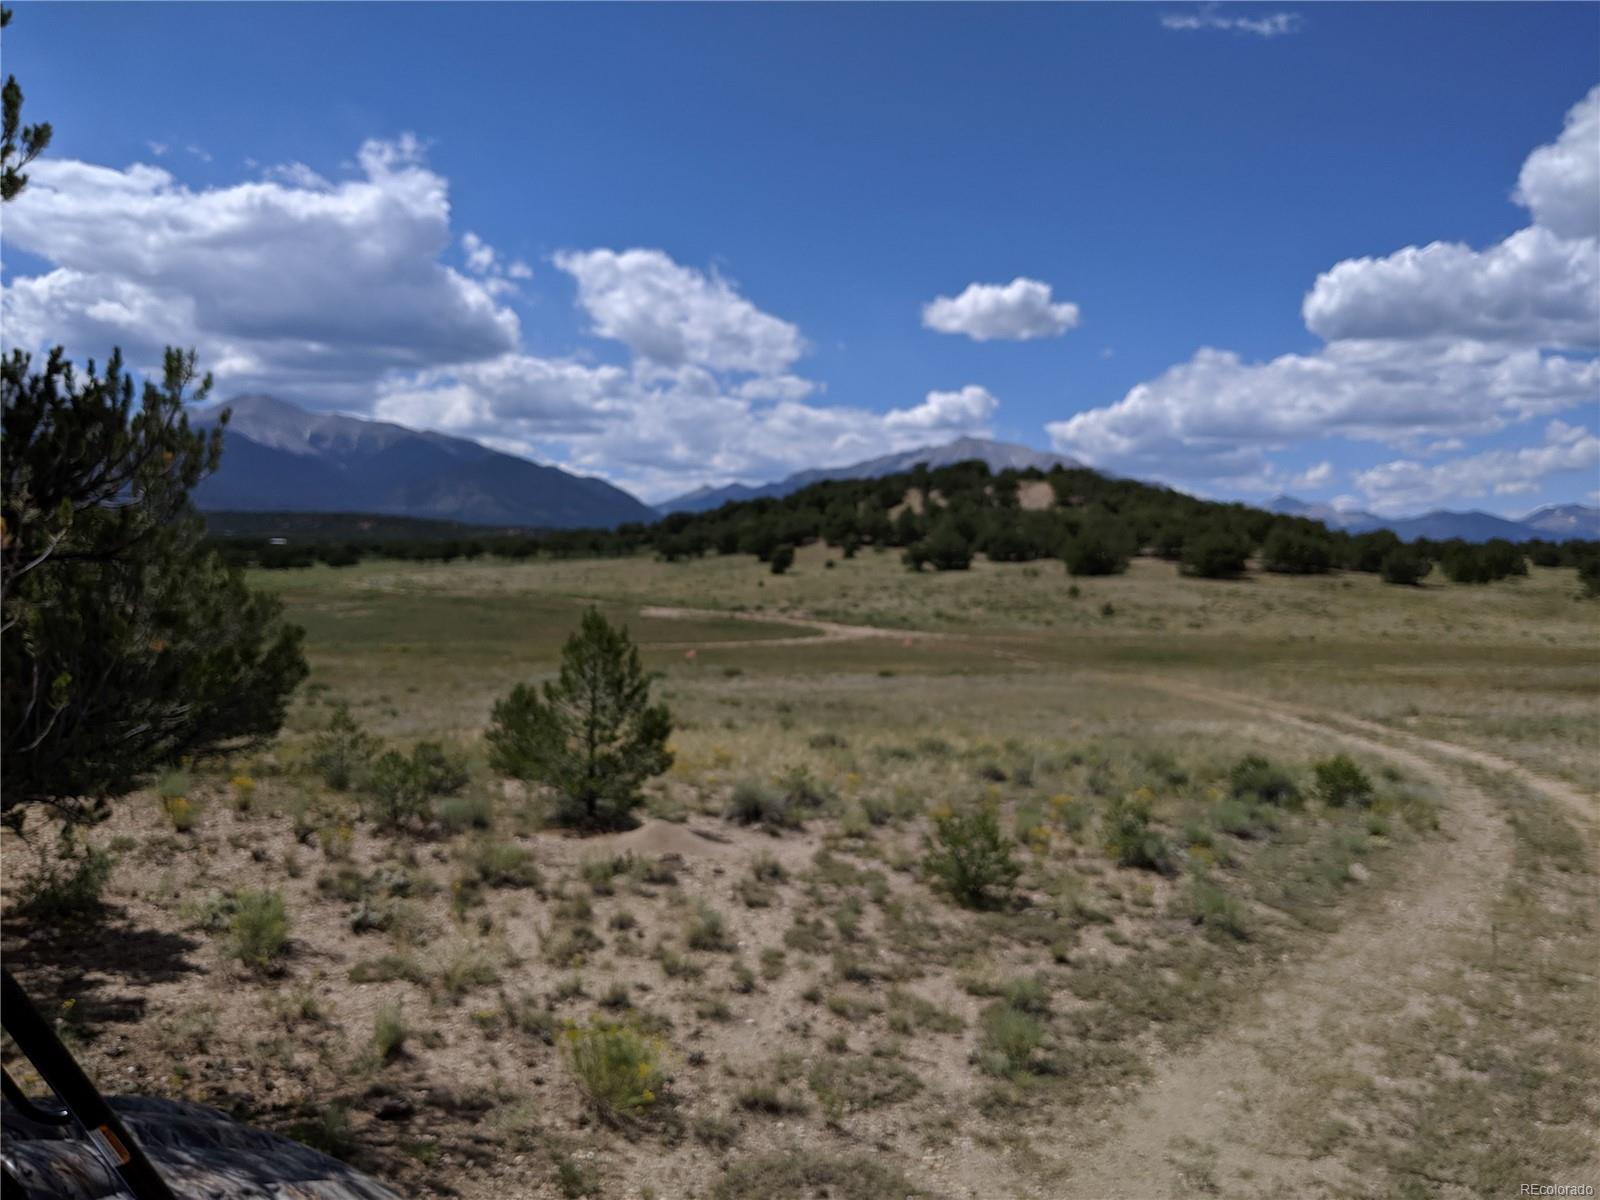 Lot 13, Nathrop, CO 81236 - Nathrop, CO real estate listing